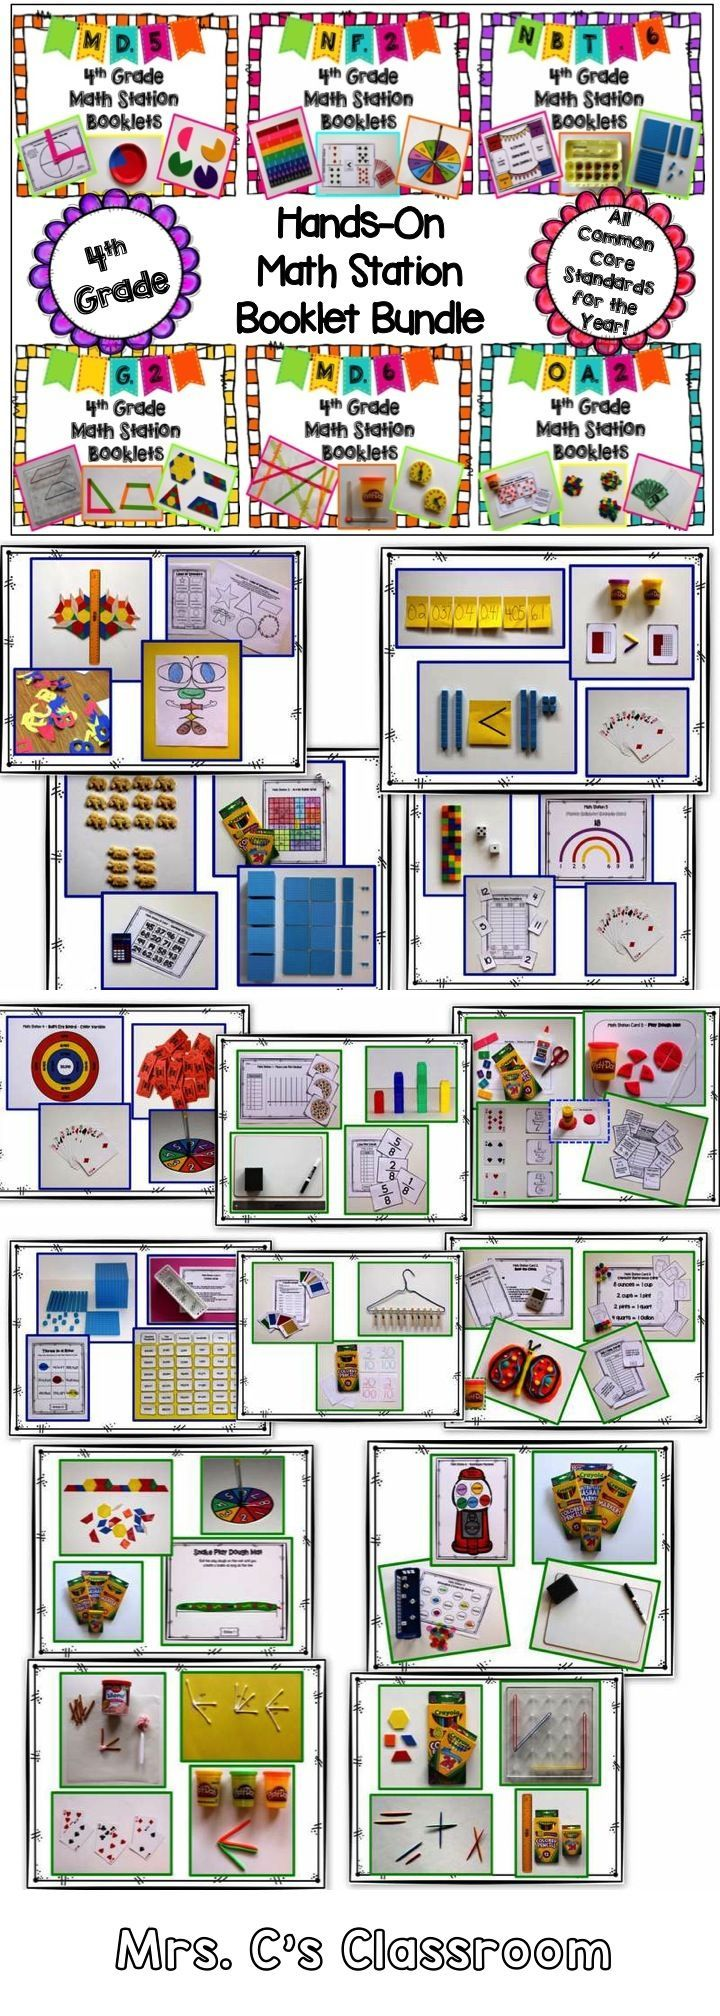 113101 best Cool Math Stuff!!! images on Pinterest | Teaching math ...